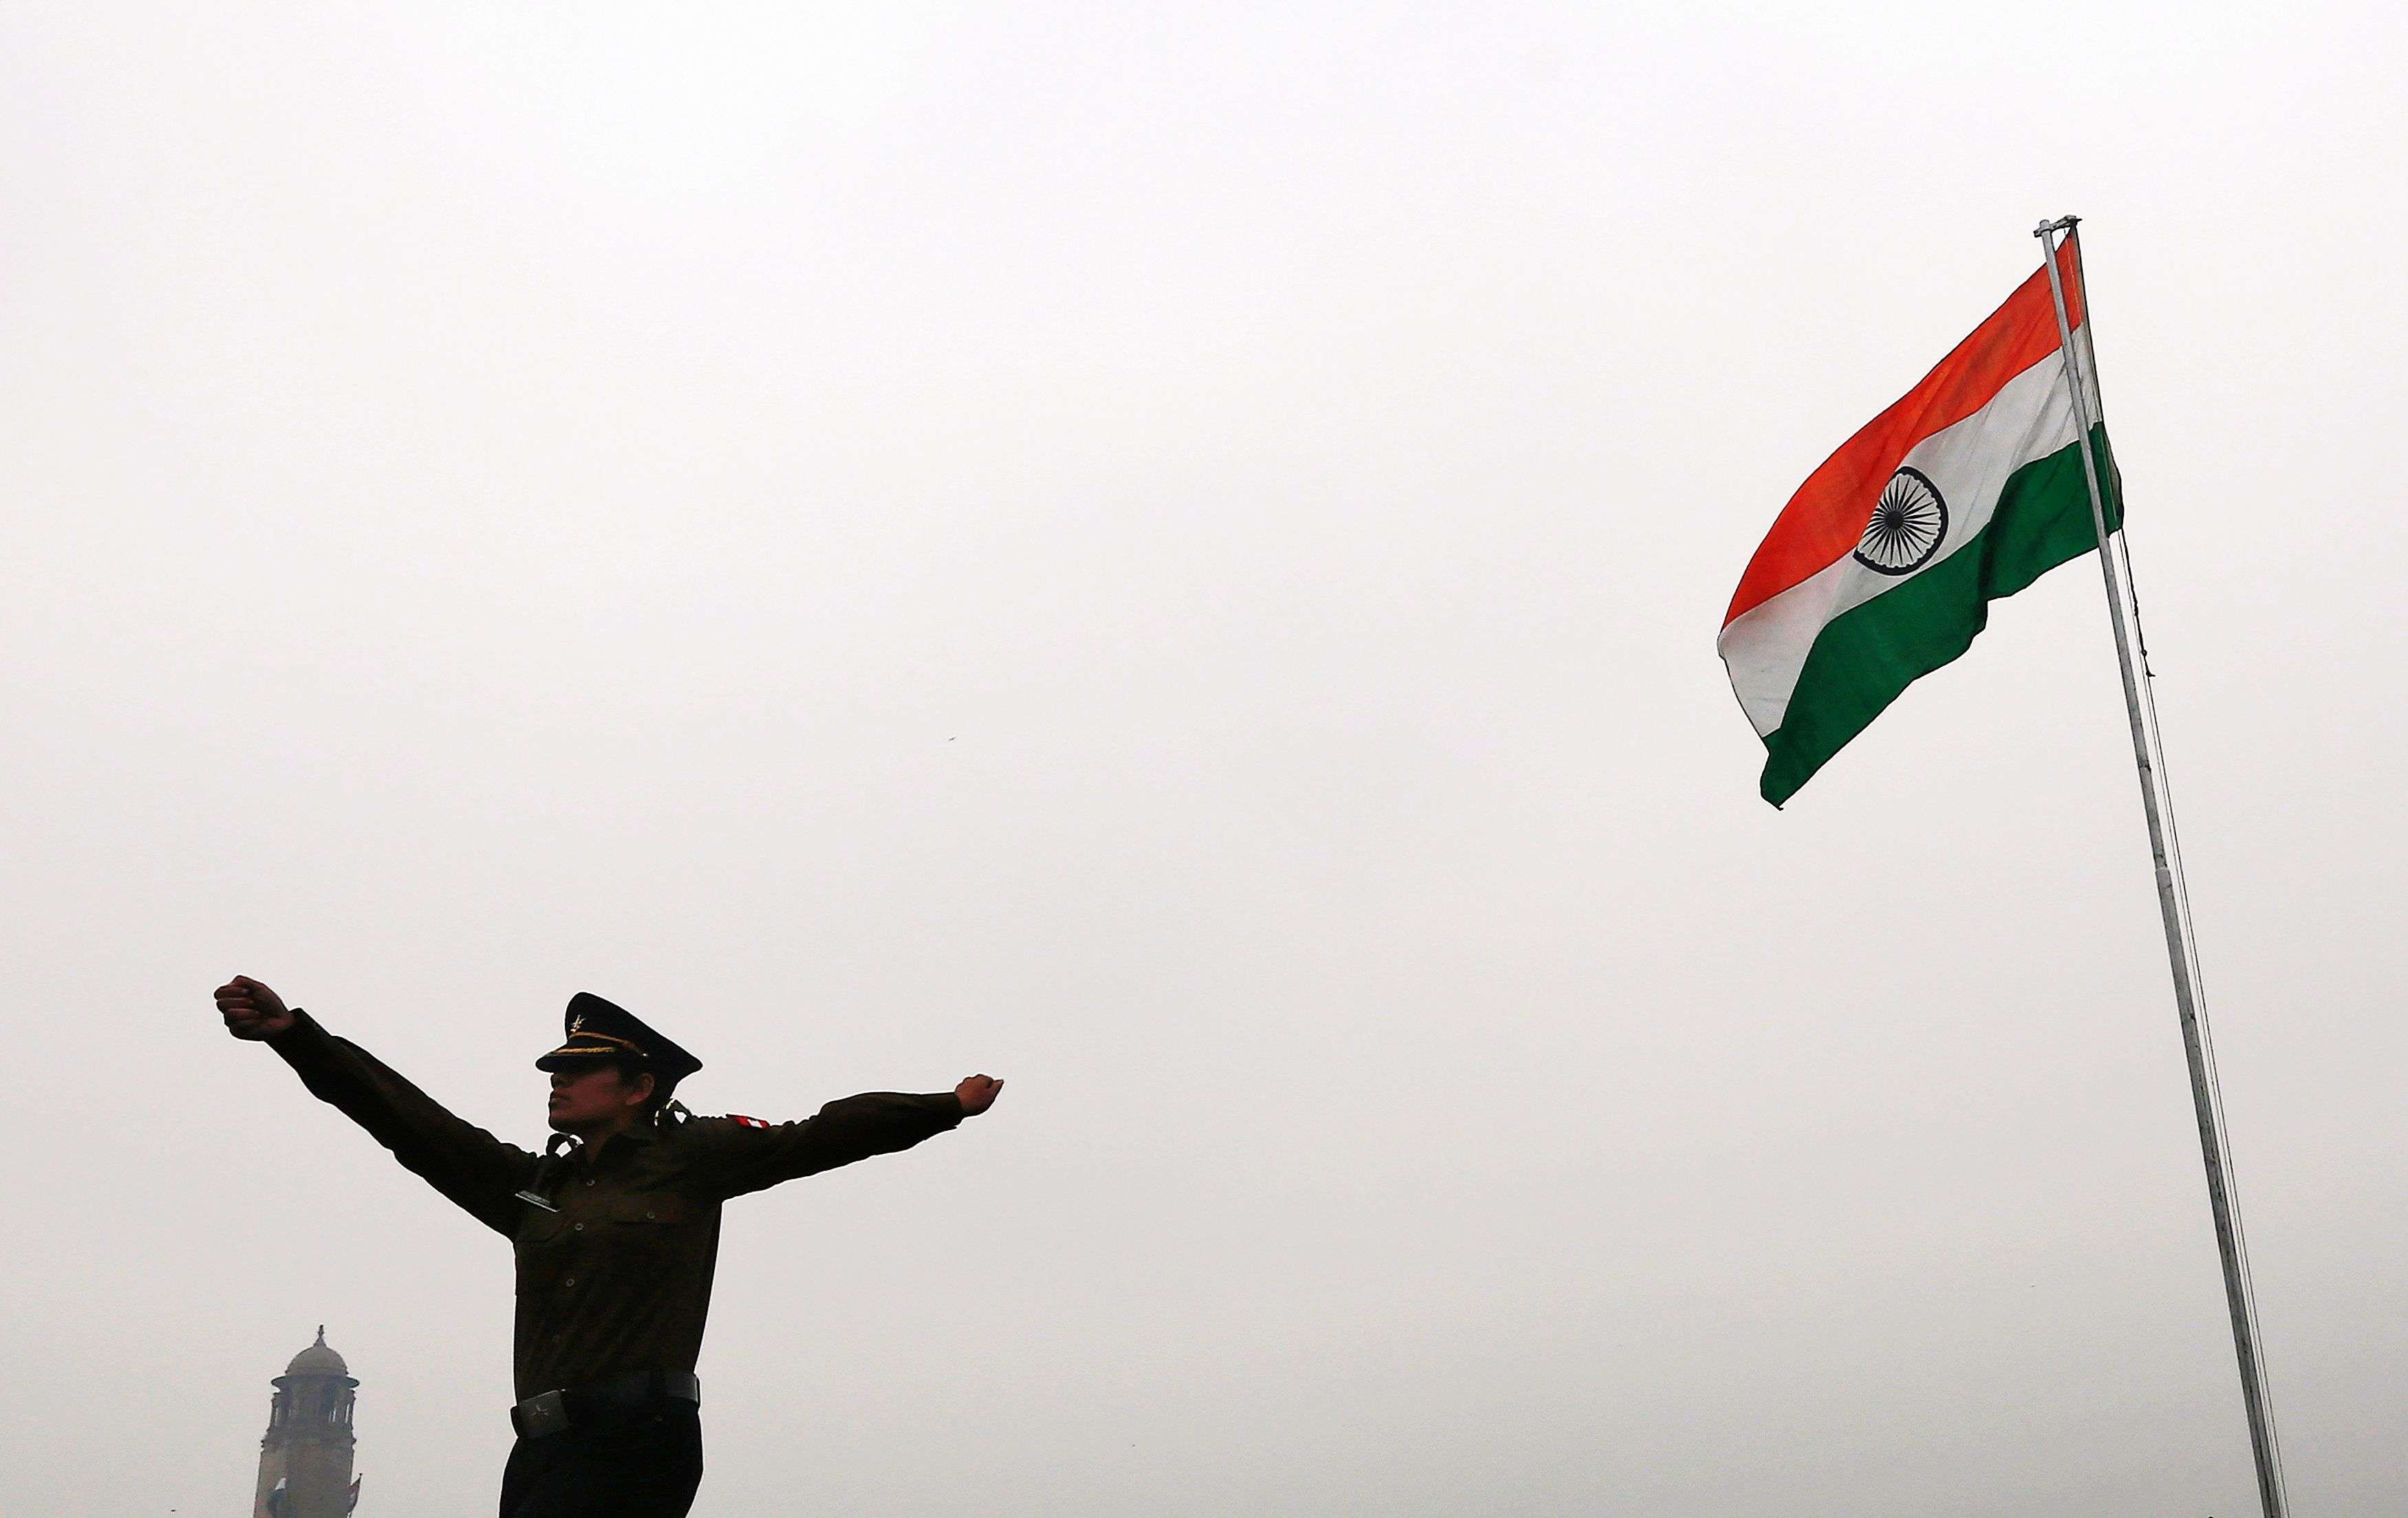 A soldier marches as India's national flag flutters during a rehearsal for the 'Beating the Retreat' ceremony in New Delhi. (REUTERS/Adnan Abidi)